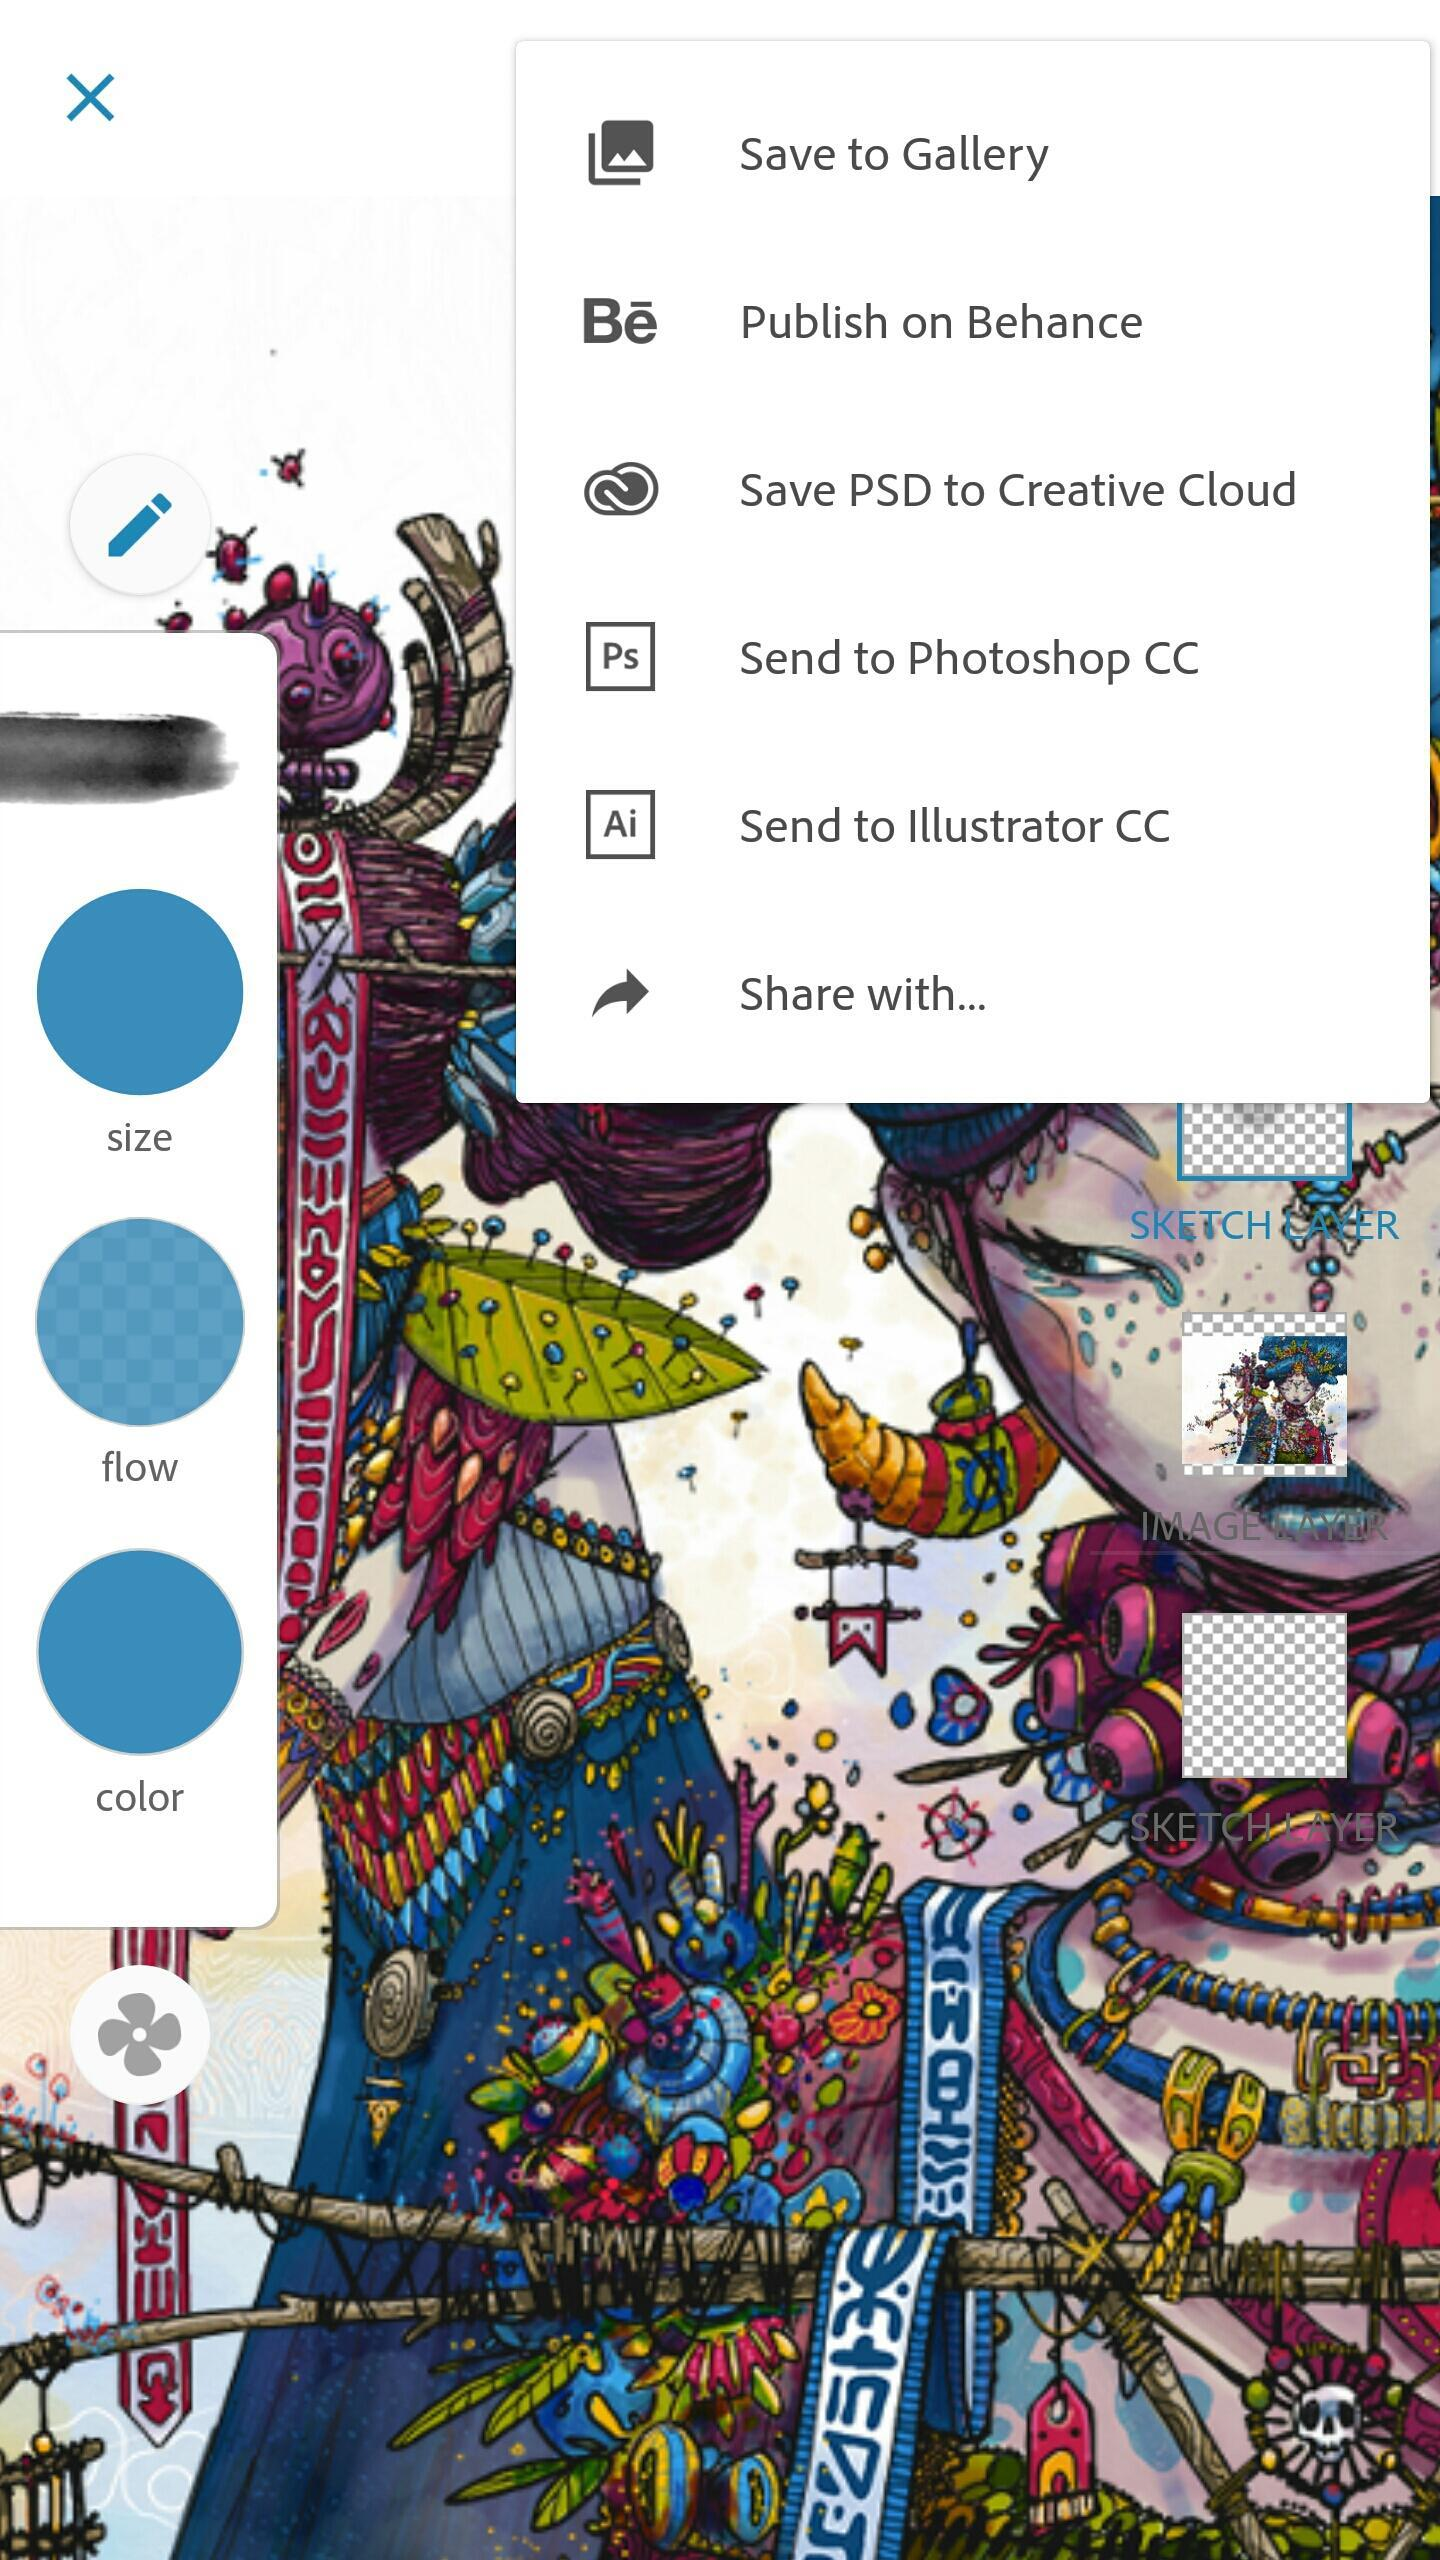 Adobe Photoshop Sketch for Android - APK Download